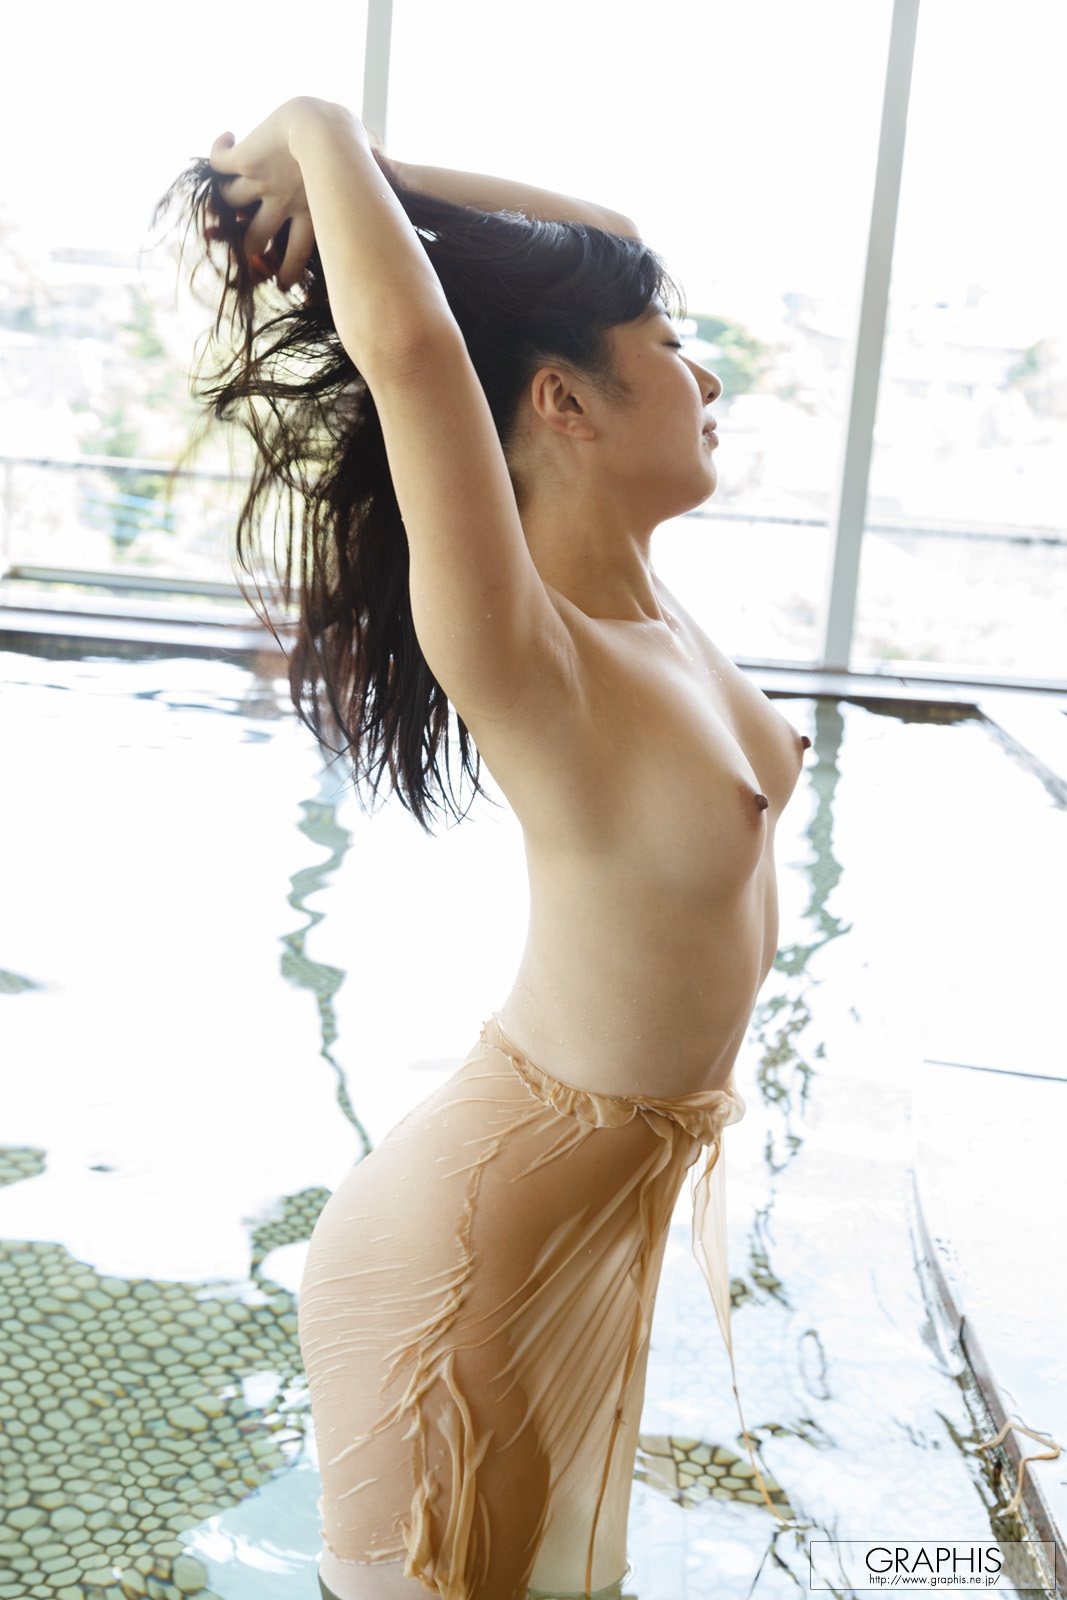 kana-yume-public-bath-naked-asian-graphis-16